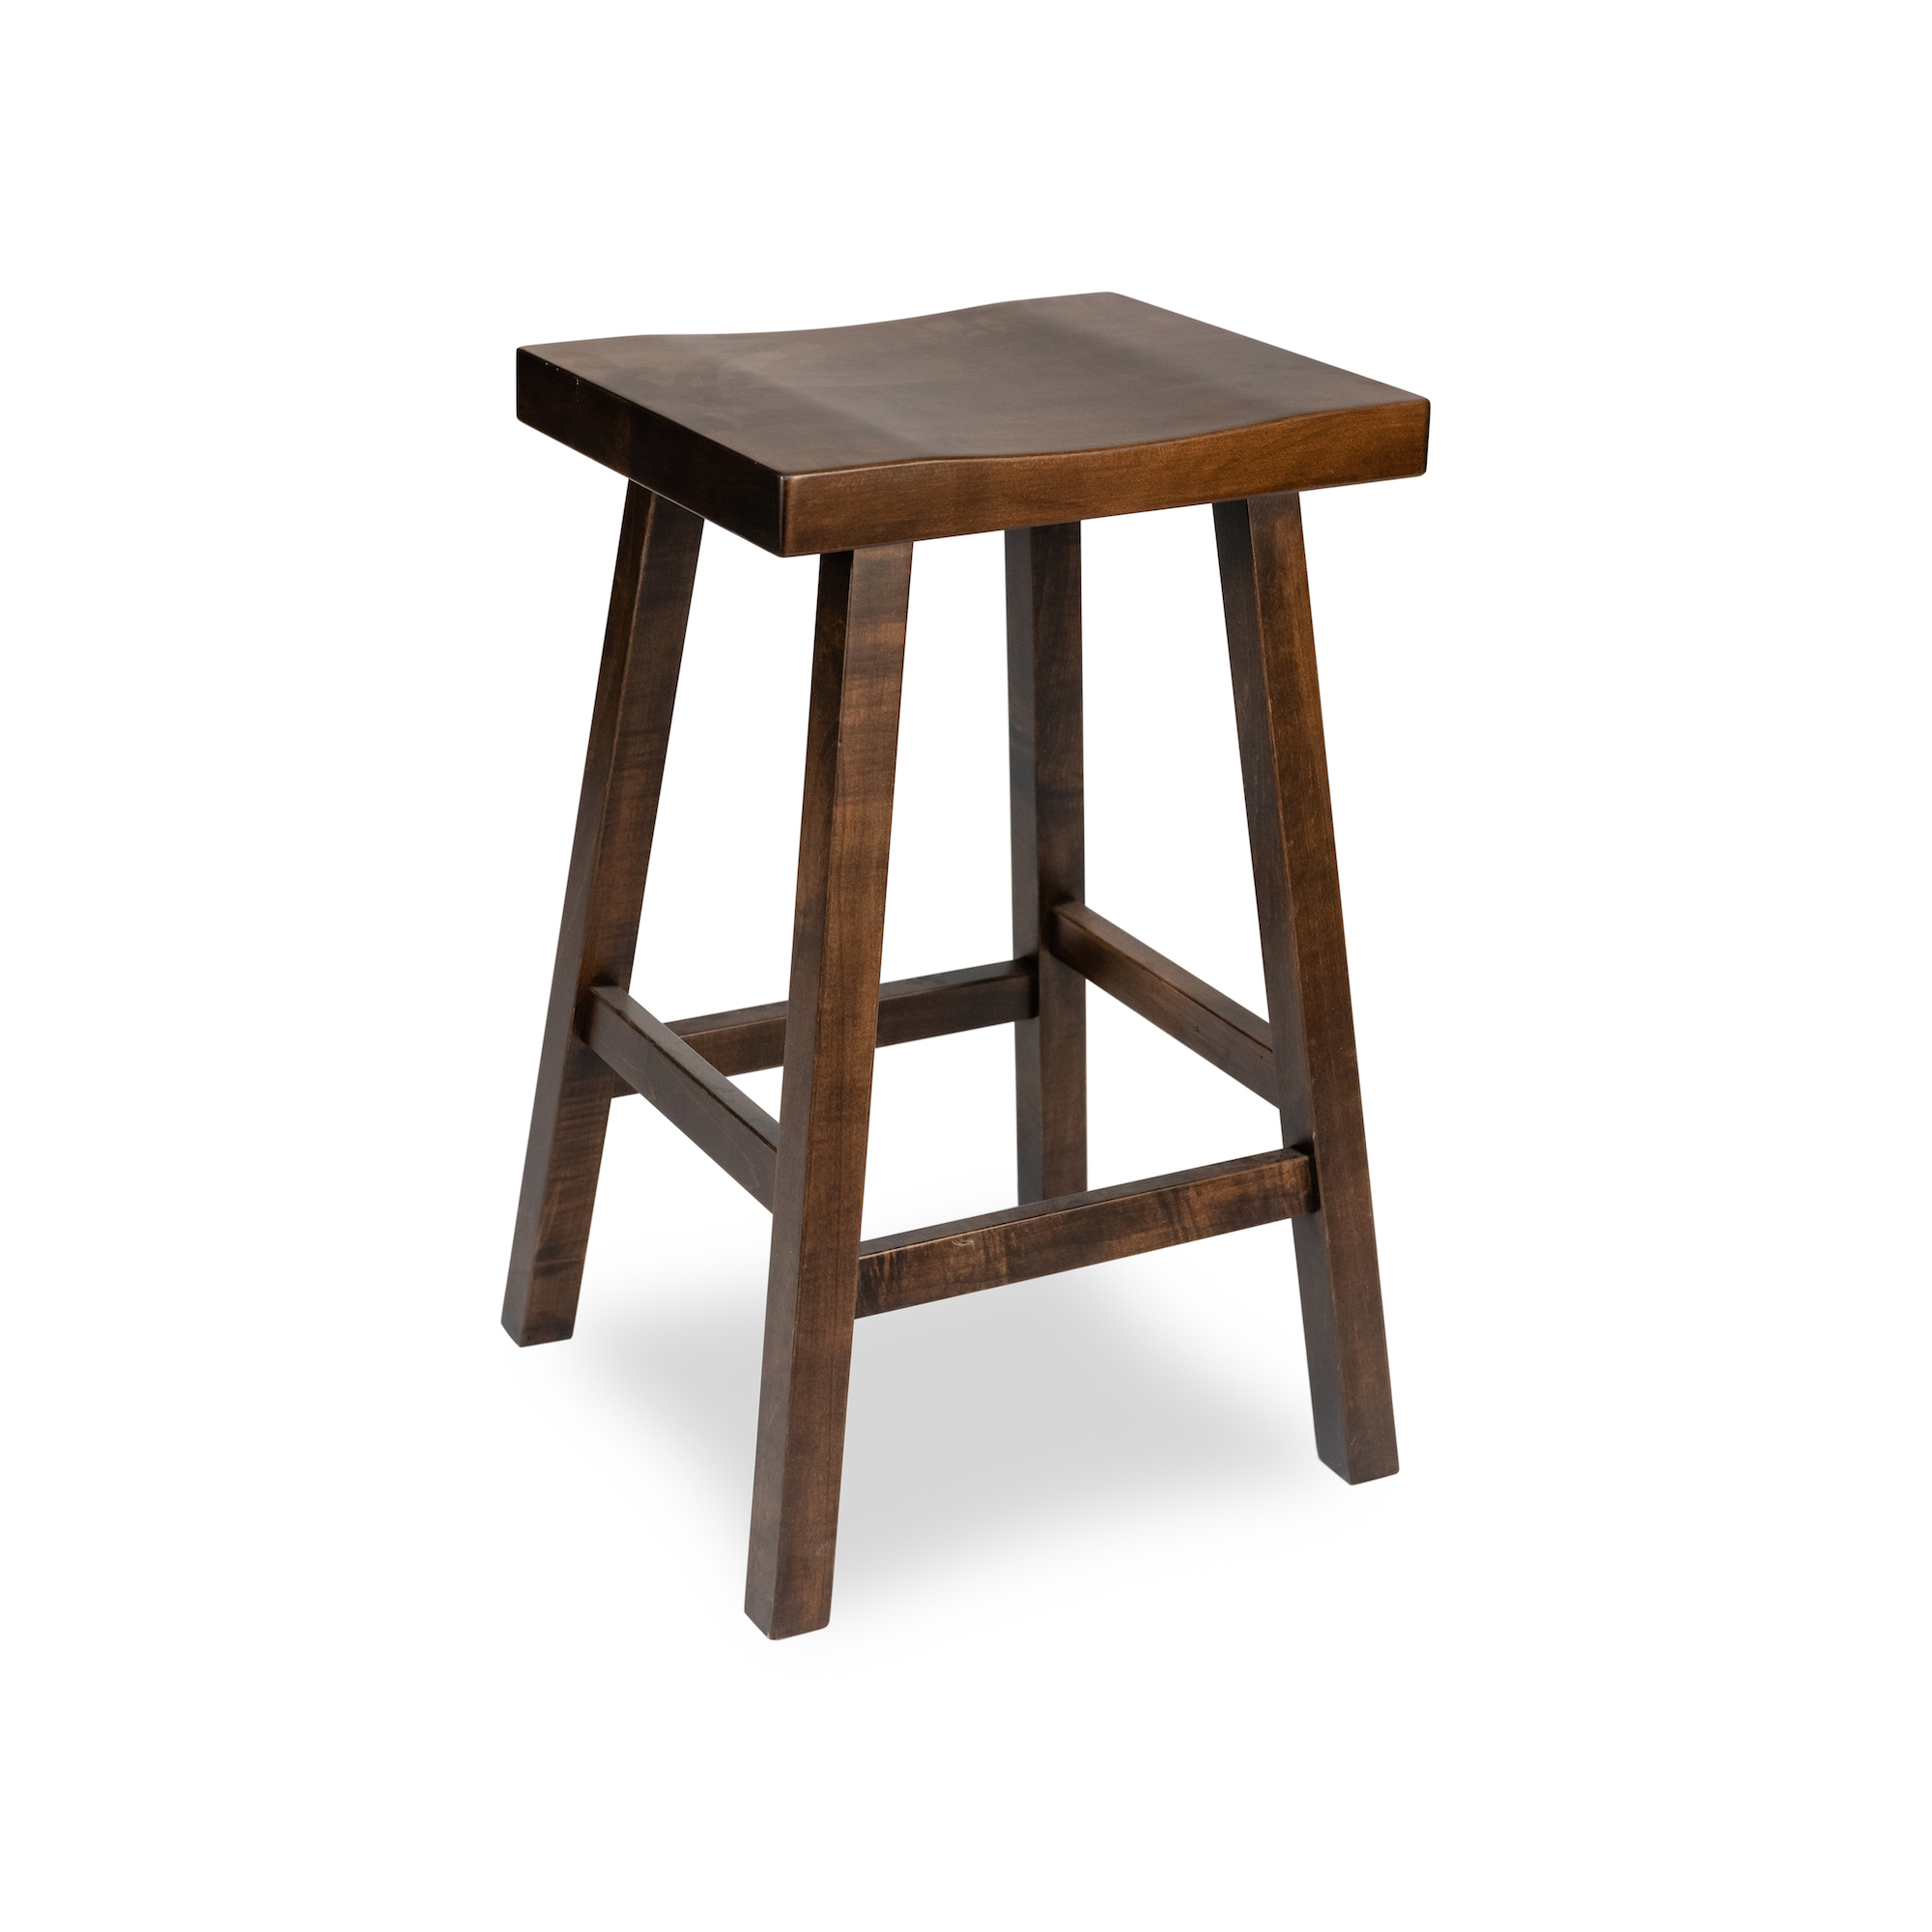 Woodcraft_Furniture_SaddleStool-3-4.jpg